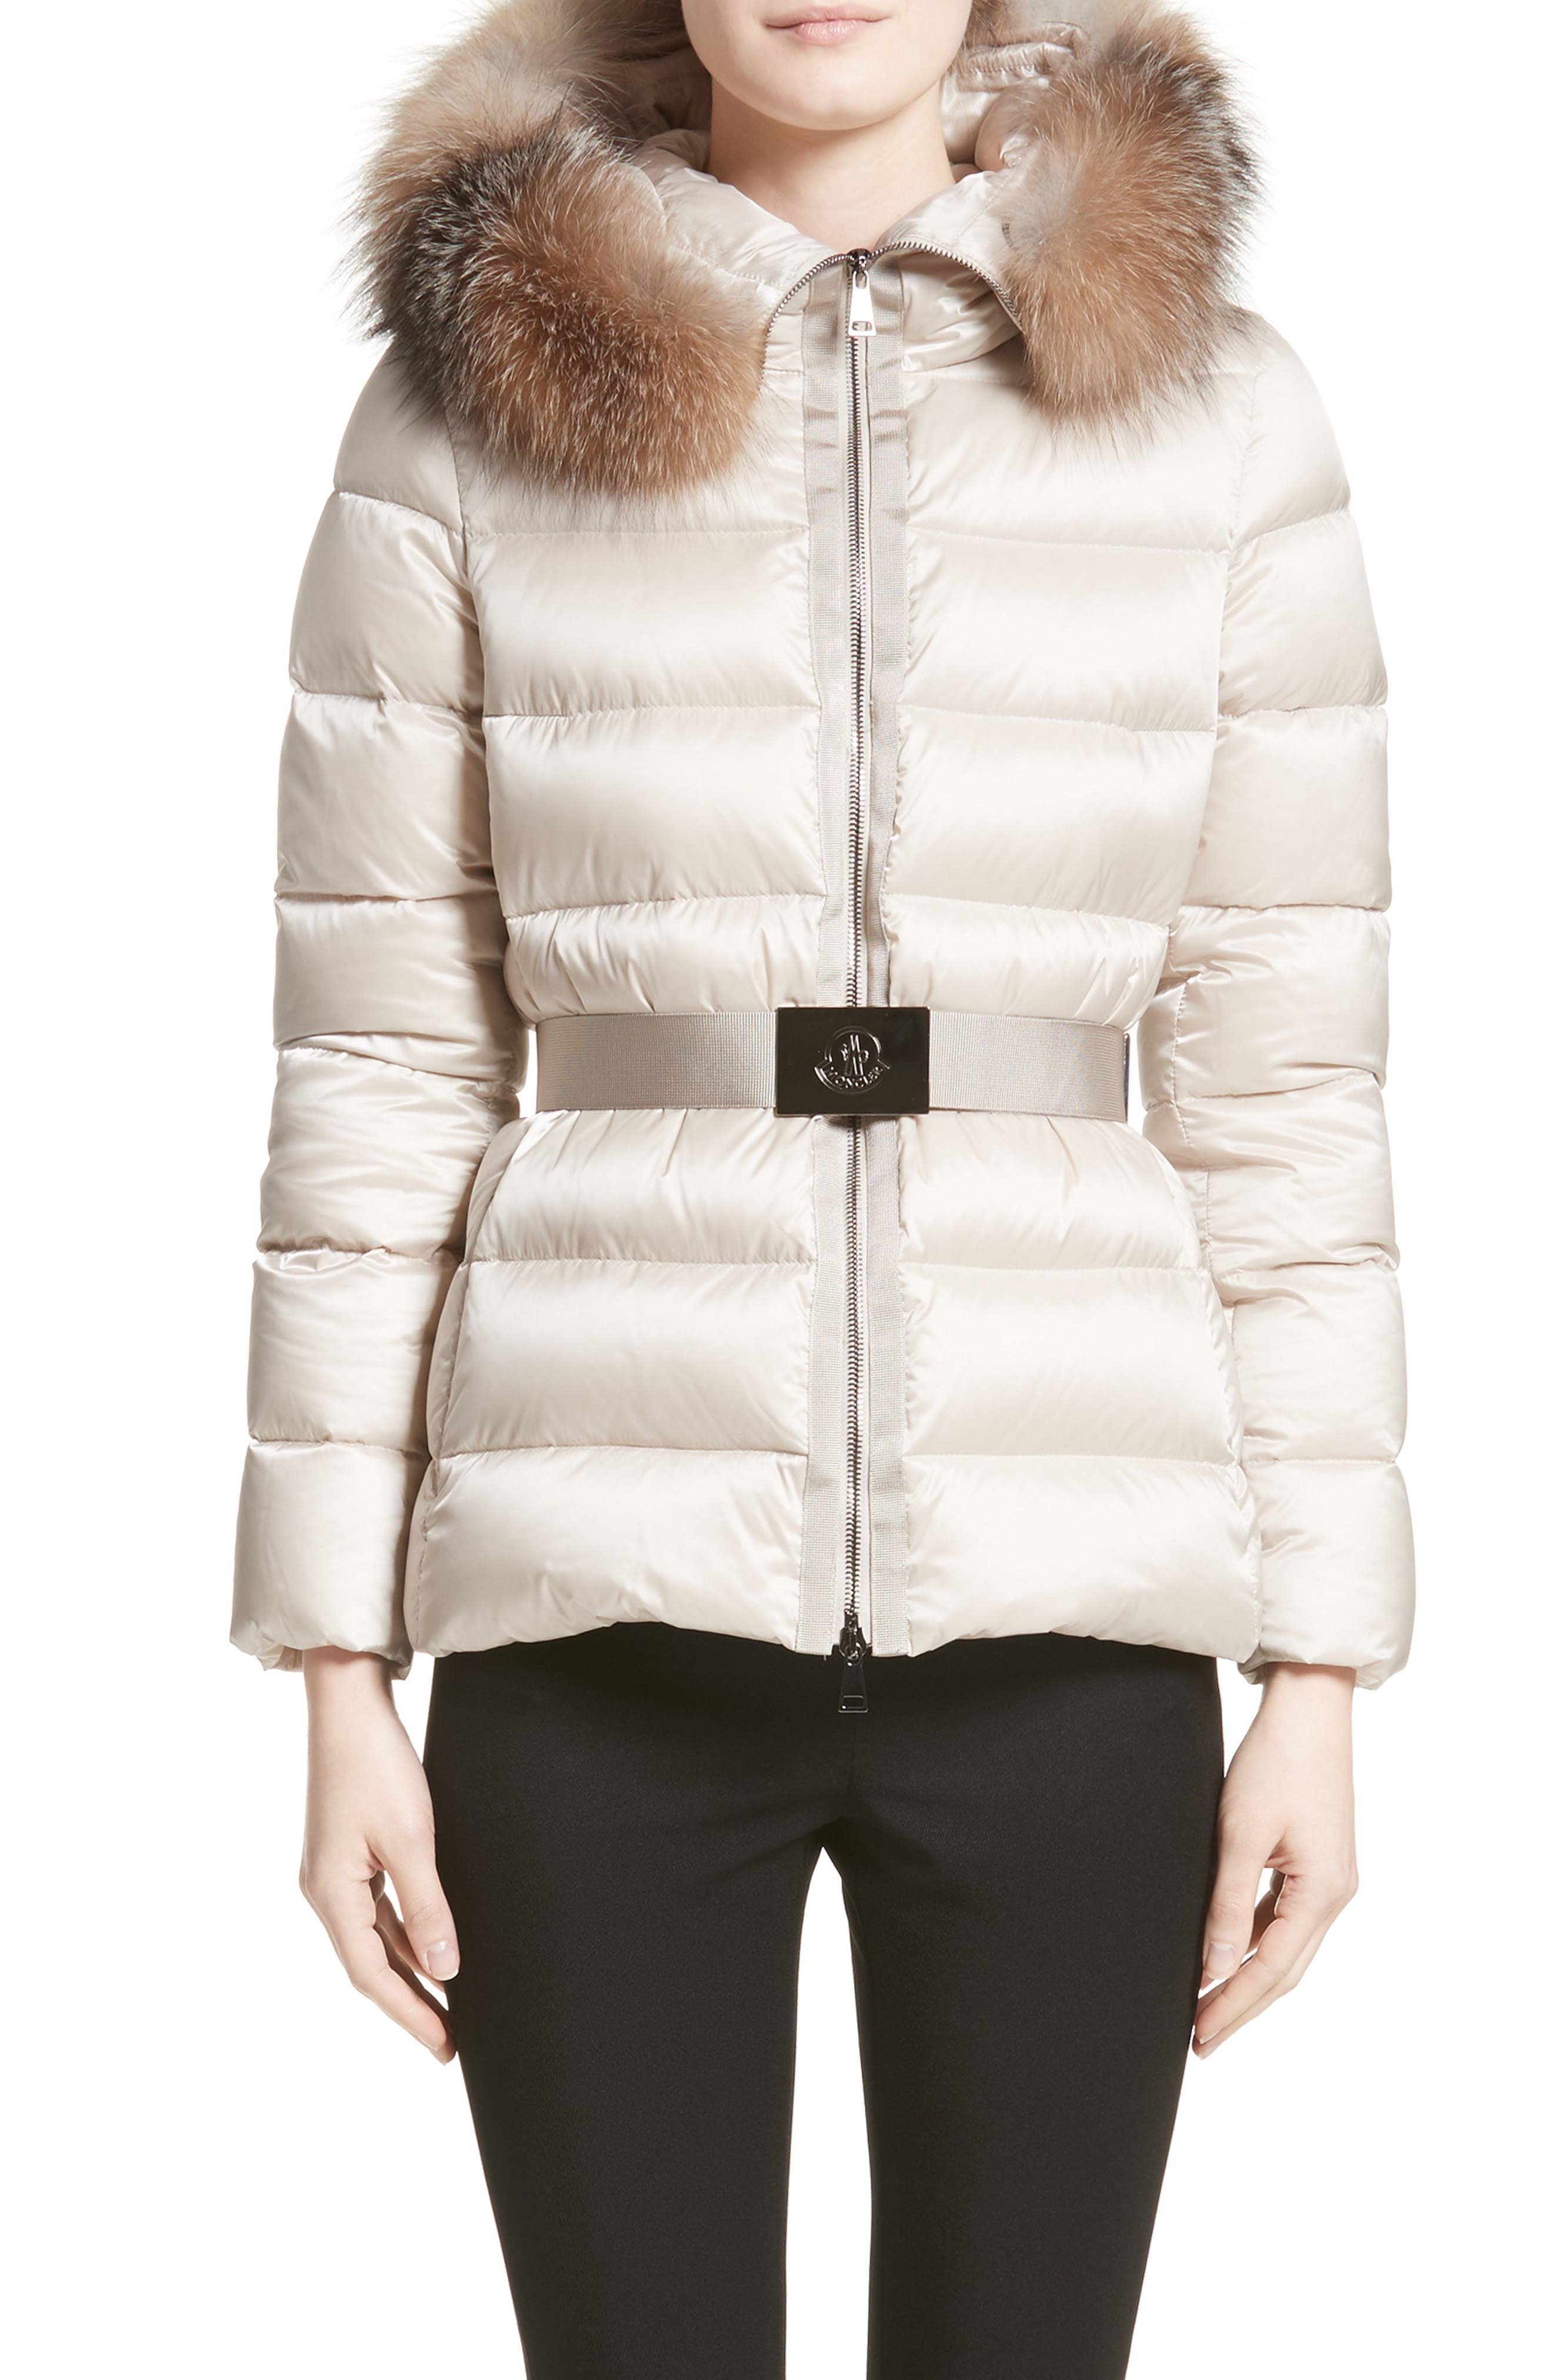 Moncler 'Tatie' Belted Down Puffer Coat with Removable Genuine Fox Fur Trim